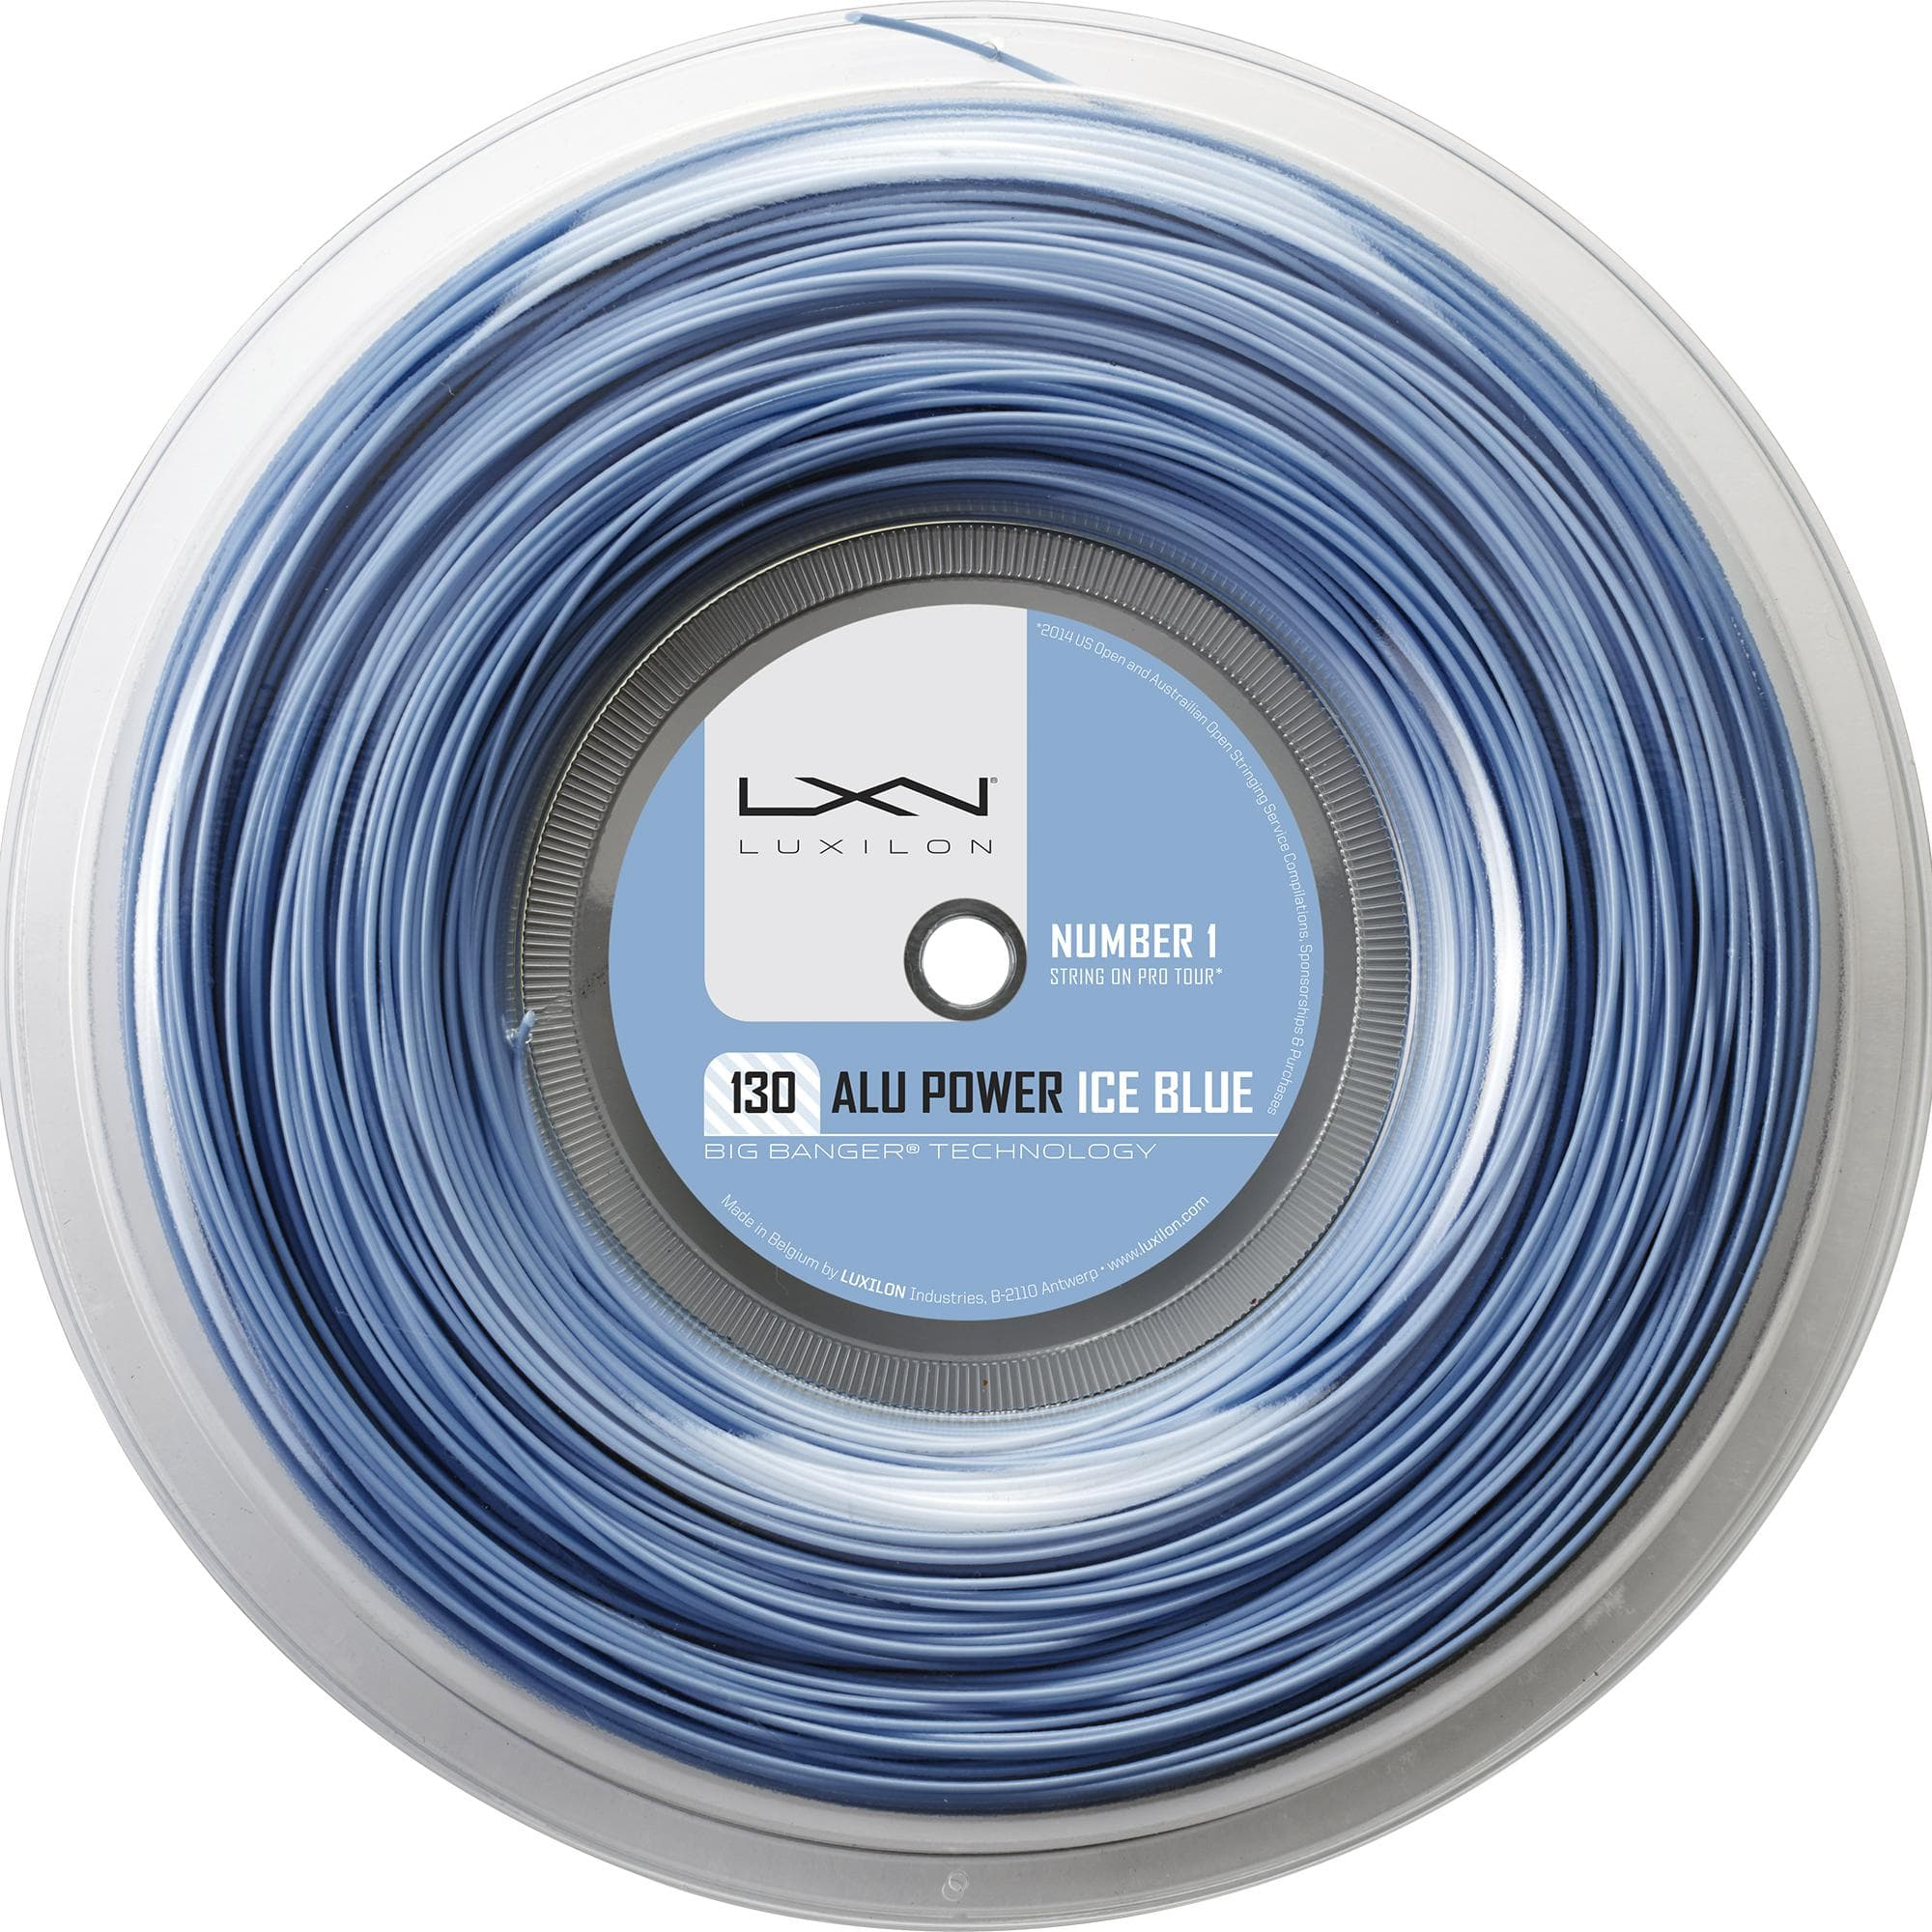 ALU POWER ICE BLUE